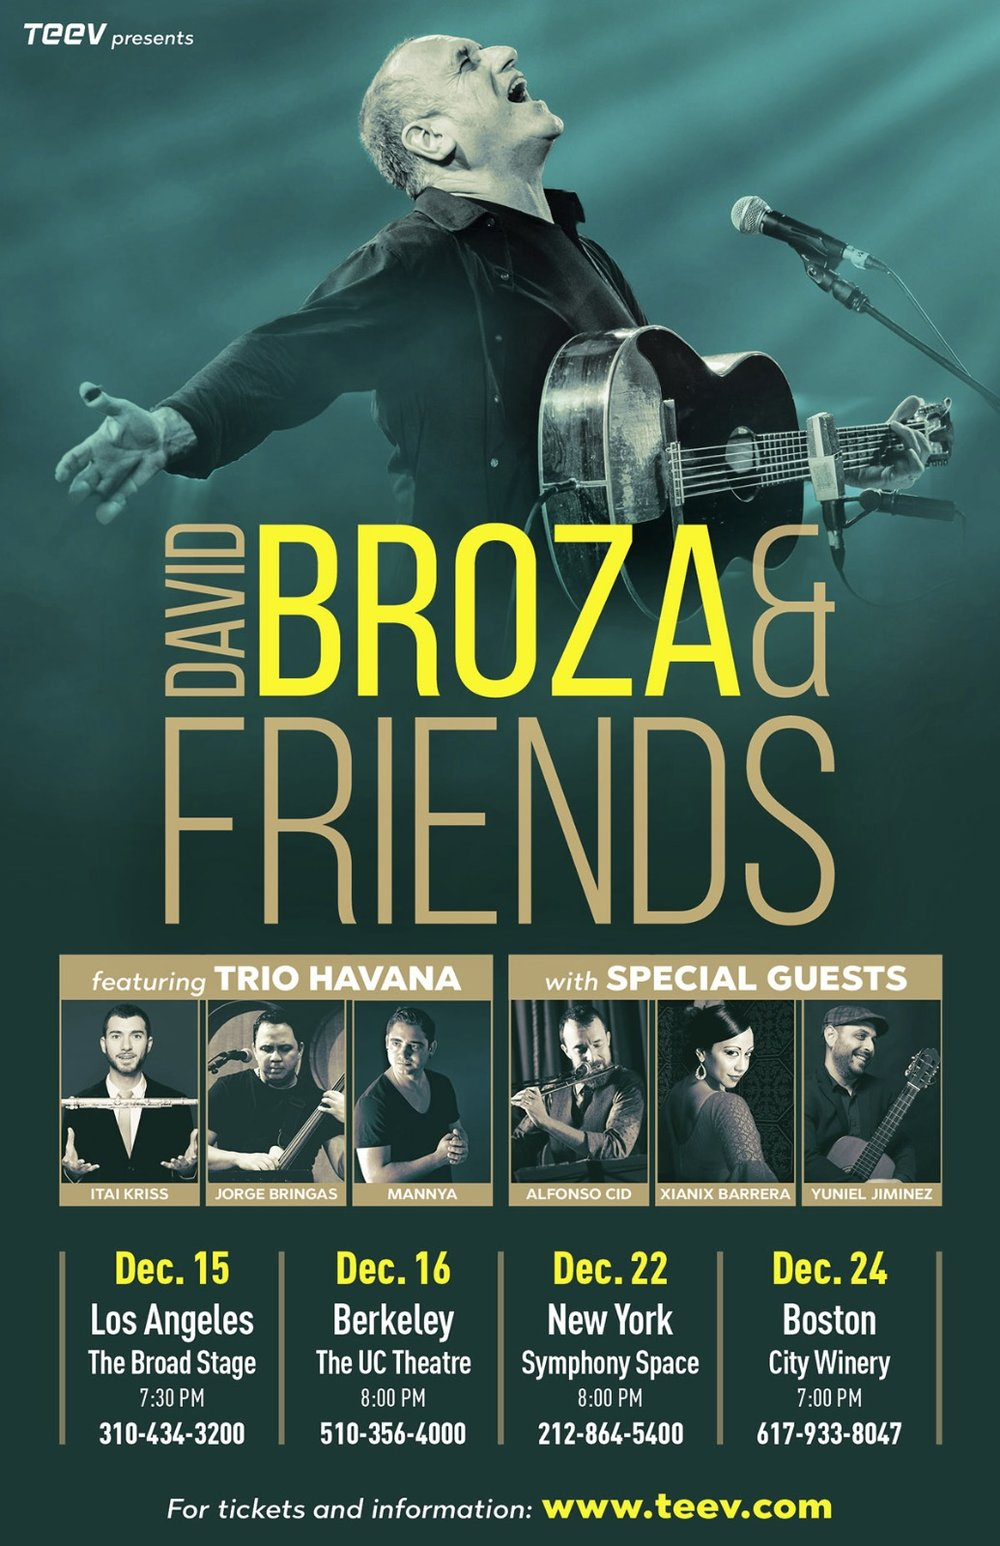 NYC: December 22nd - 8:00 pmSymphony Space - DAVID BROZA AND FRIENDS TOURFeaturing Trio HavanaAlfonso Cid & Xianix Barrera